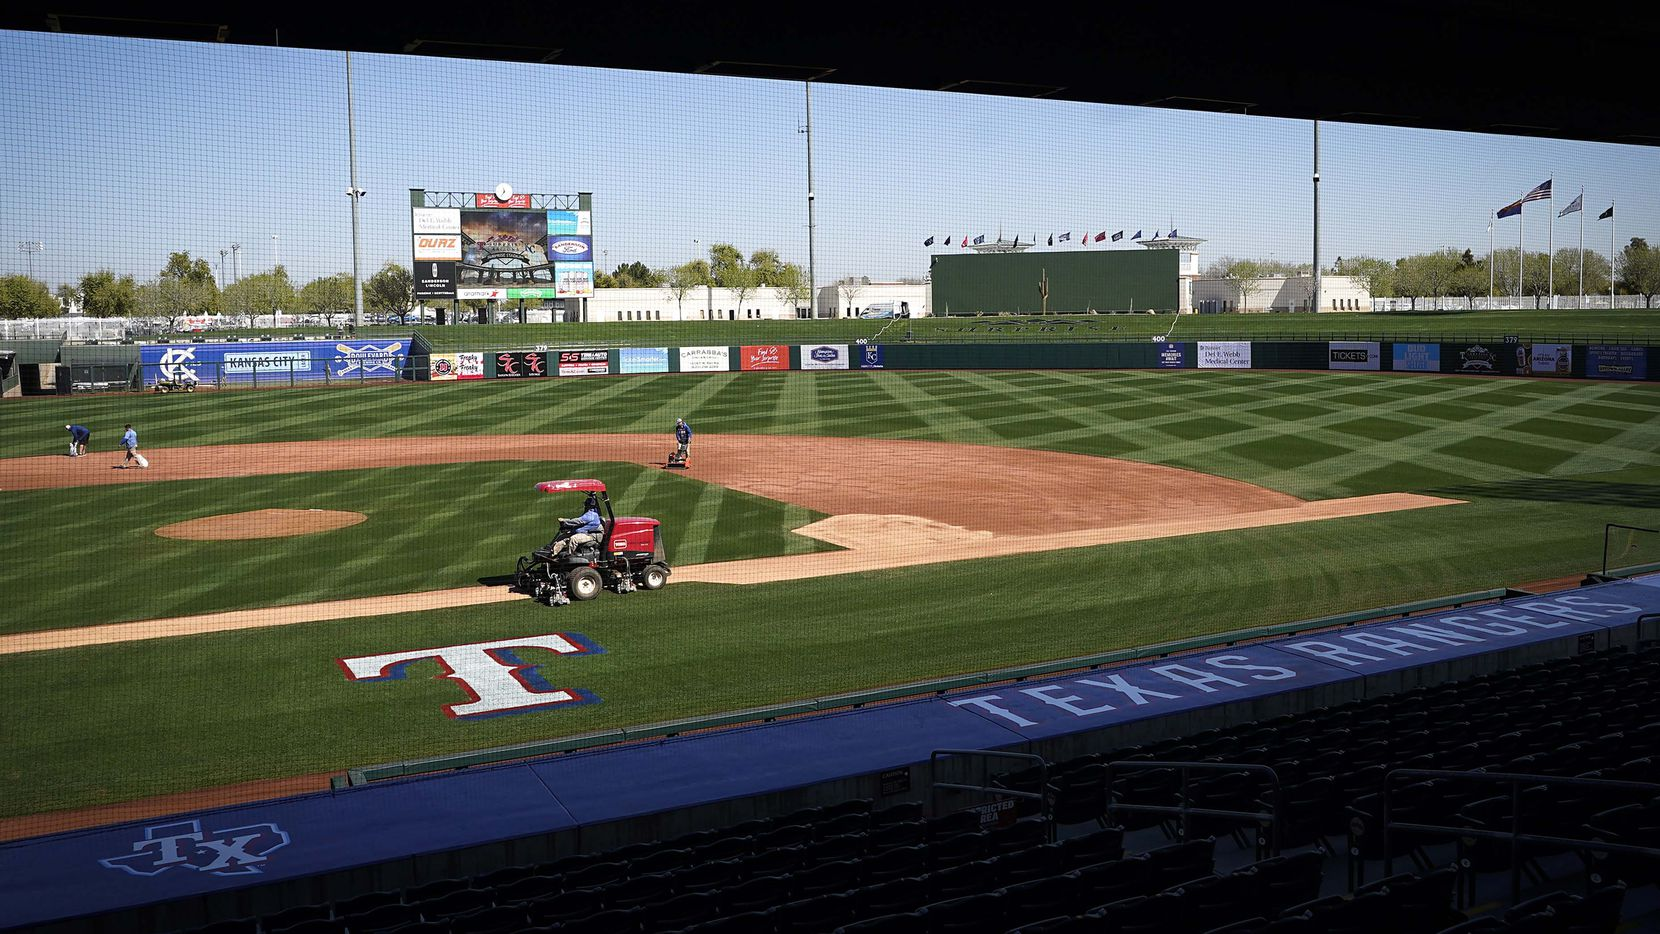 Groundskeepers work on the field at Surprise Stadium in preparation for the Texas Rangers Cactus League opening game against the Kansas City Royals on Saturday, Feb. 27, 2021, in Surprise, Ariz.